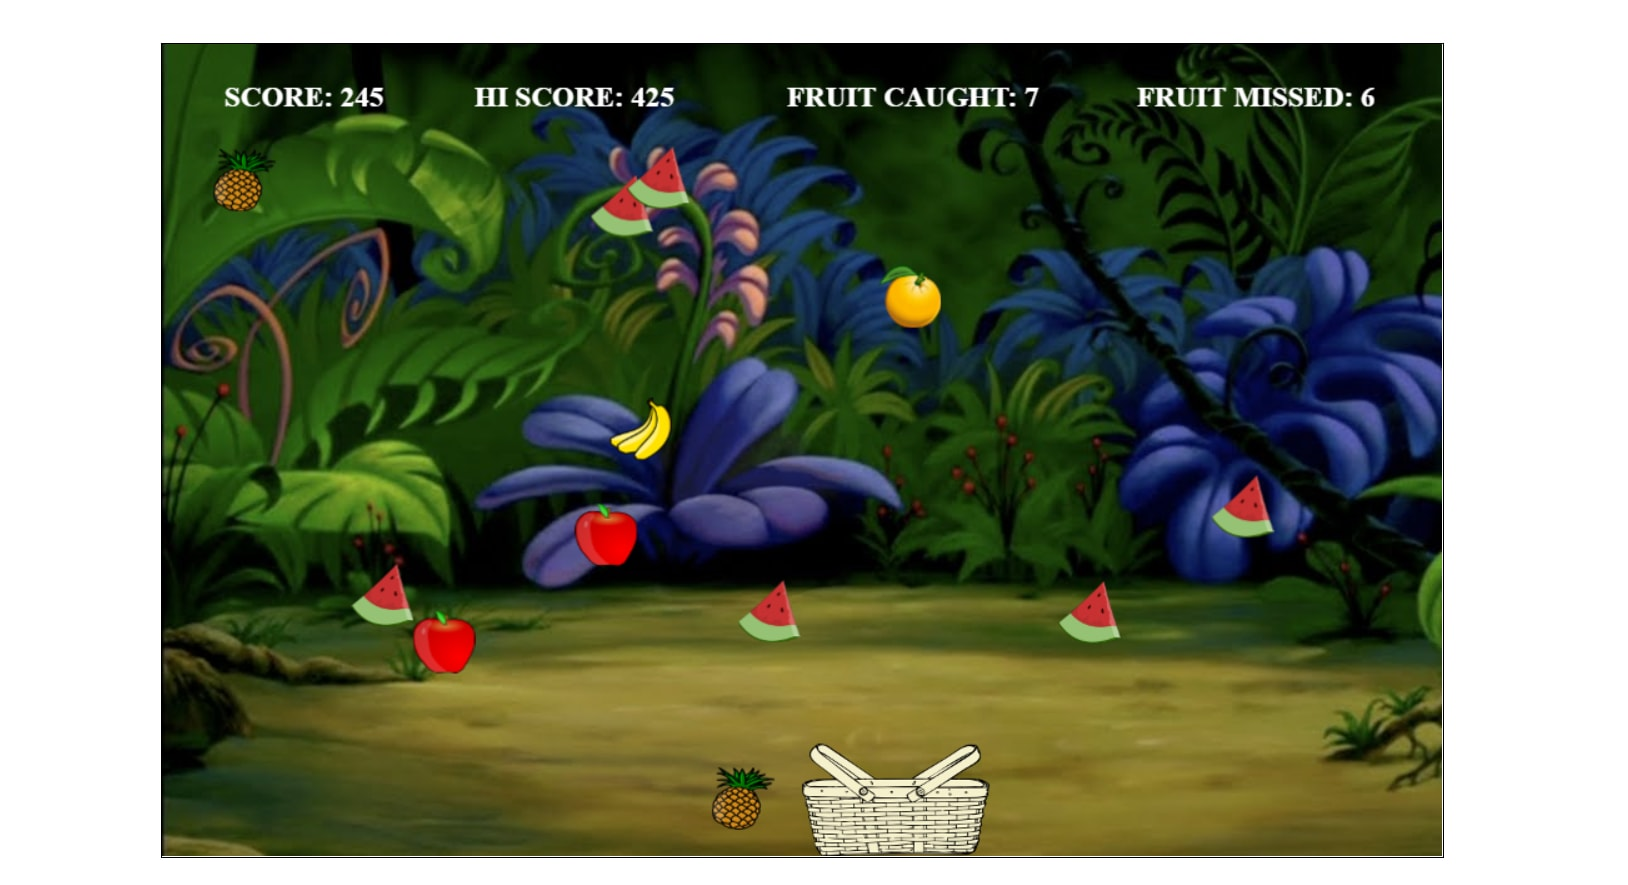 CATCH THE FRUIT GAME IN JAVASCRIPT WITH SOURCE CODE